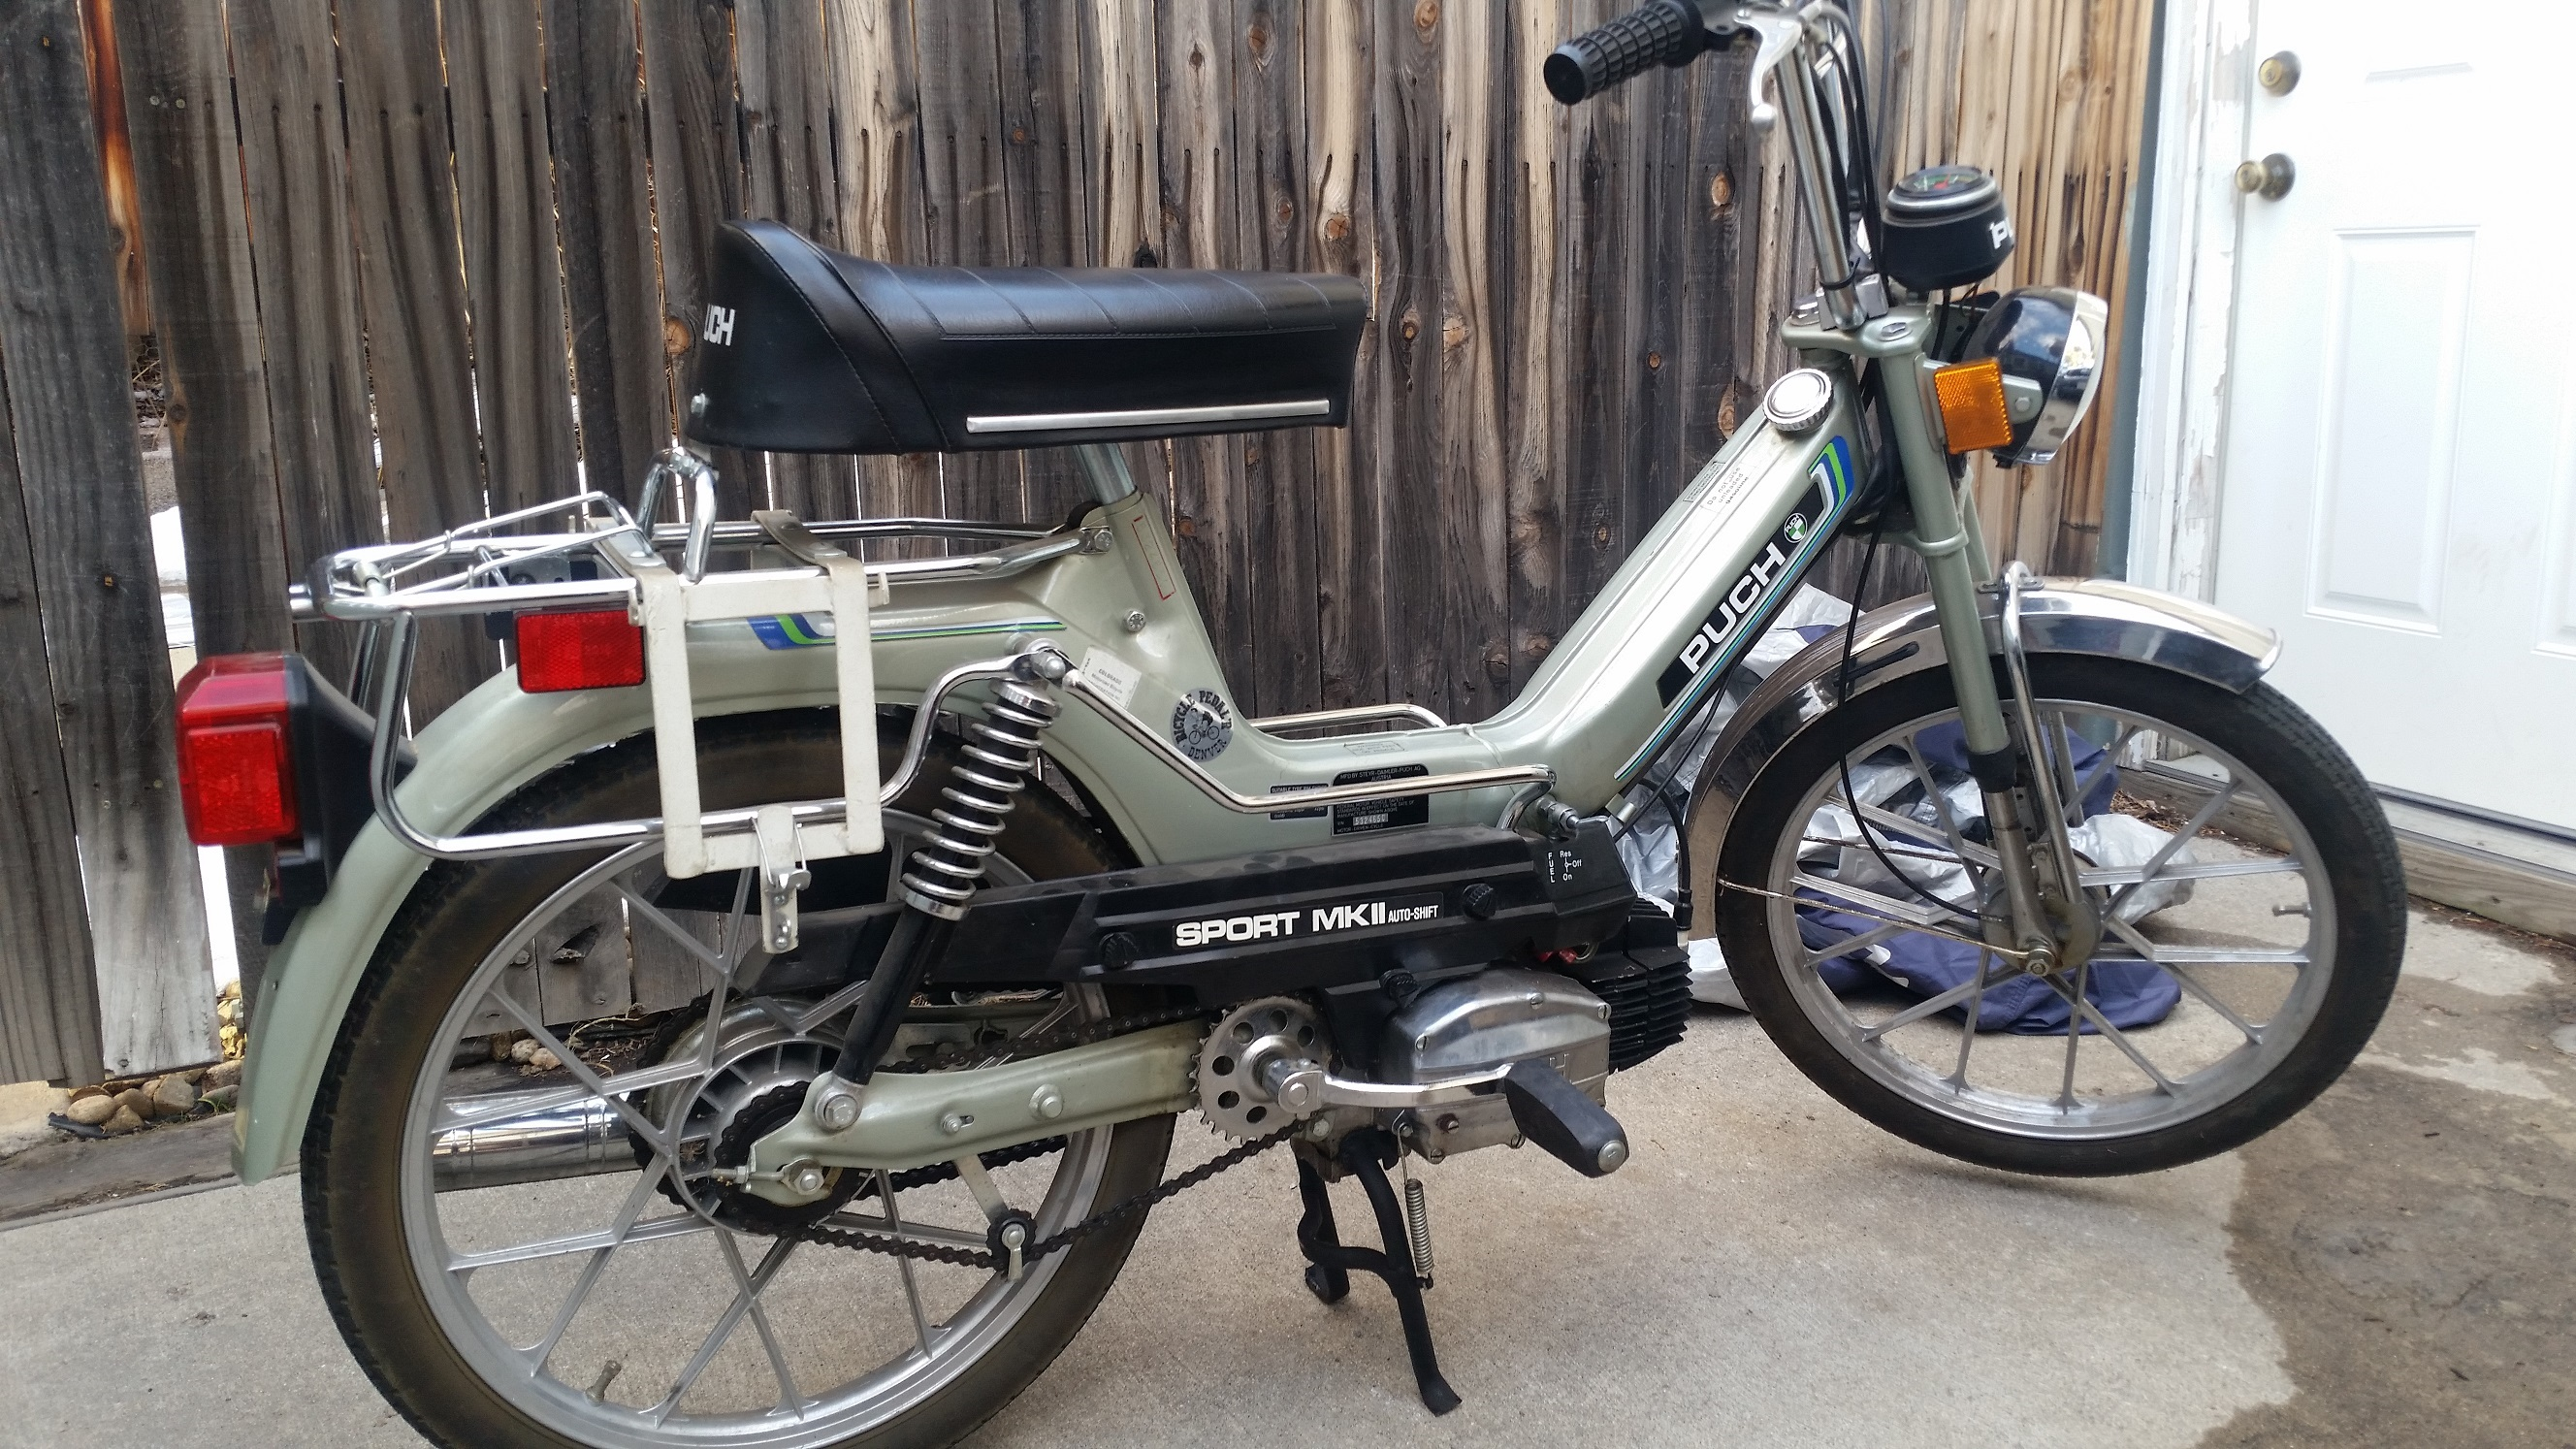 Upgrade to a treatland 70cc kit for 1978 puch maxi MKII — Moped Army